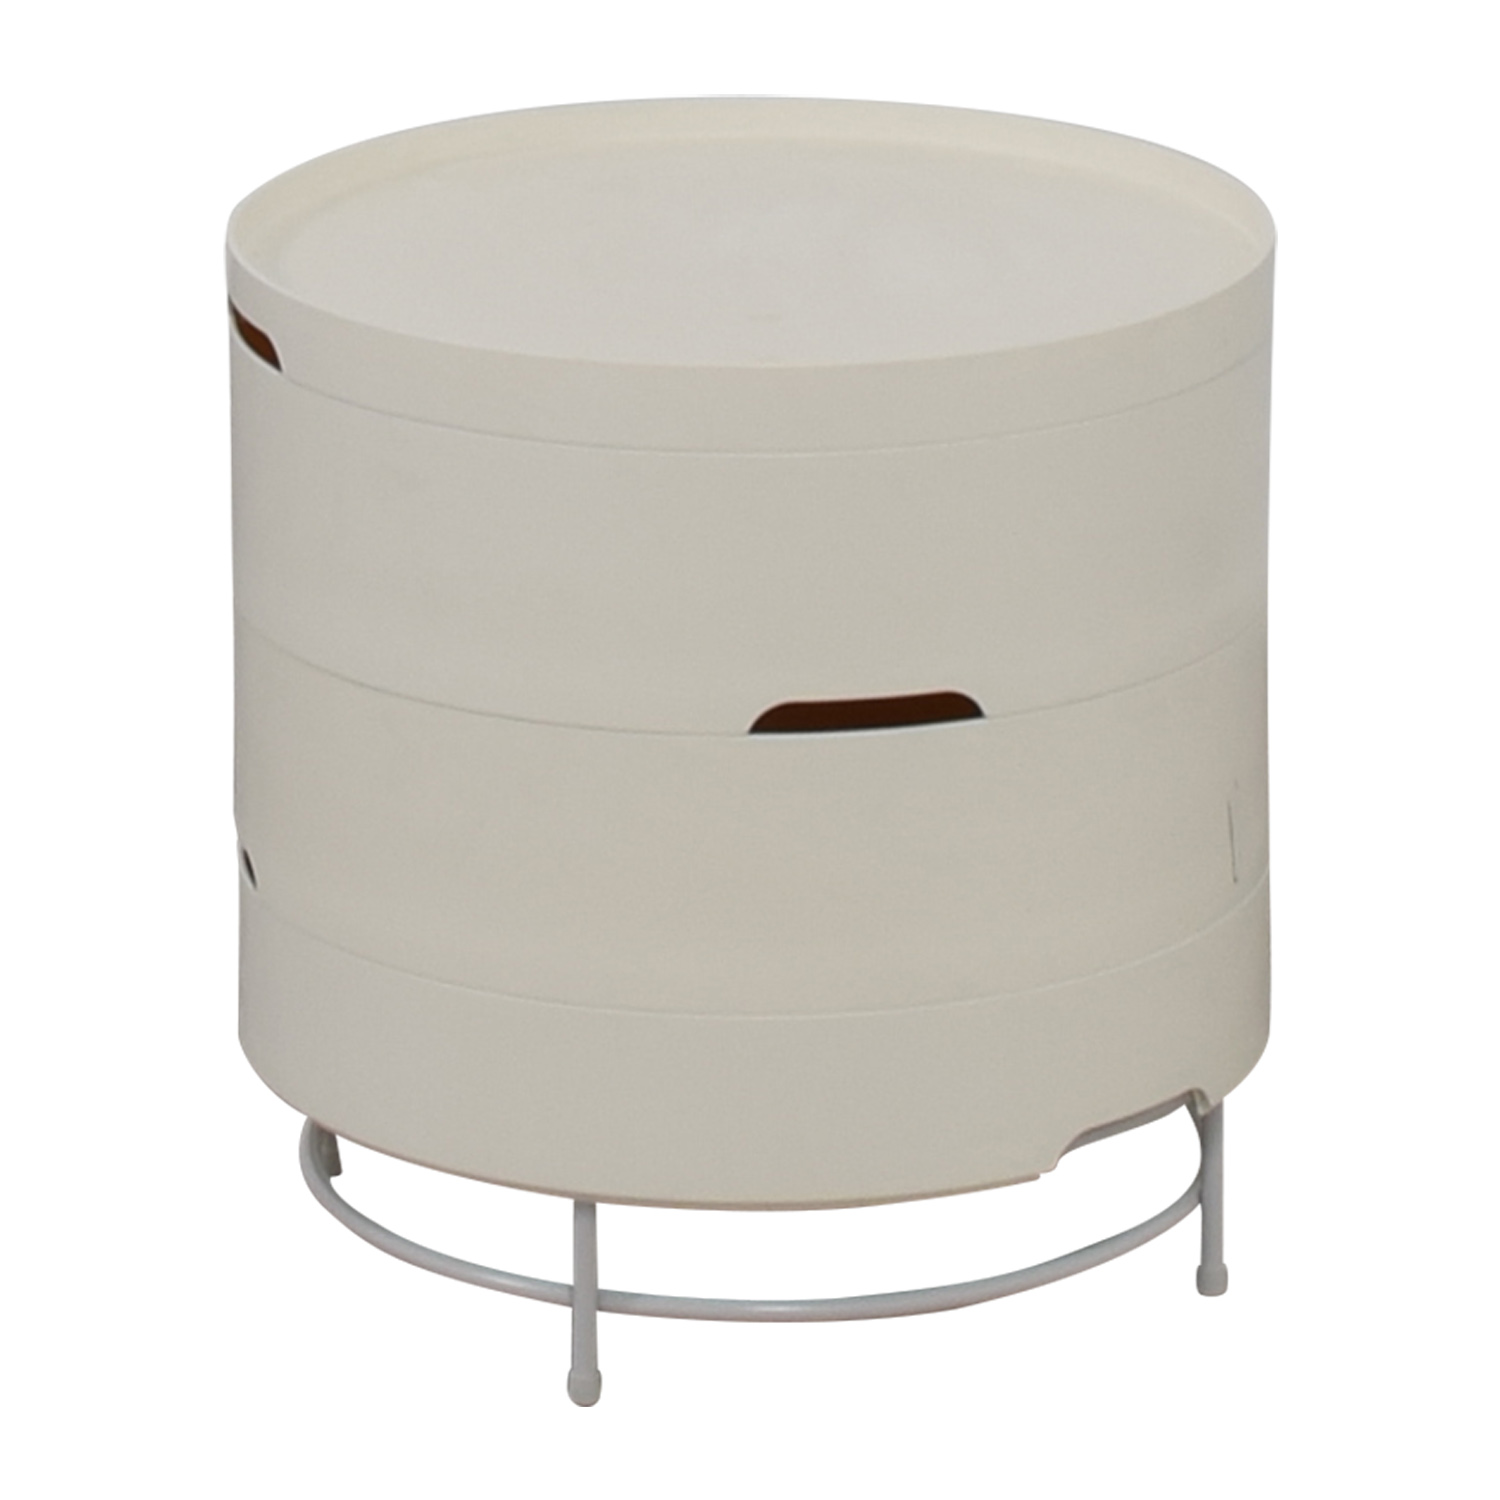 57 off ikea ikea ps 2014 white round storage table tables. Black Bedroom Furniture Sets. Home Design Ideas